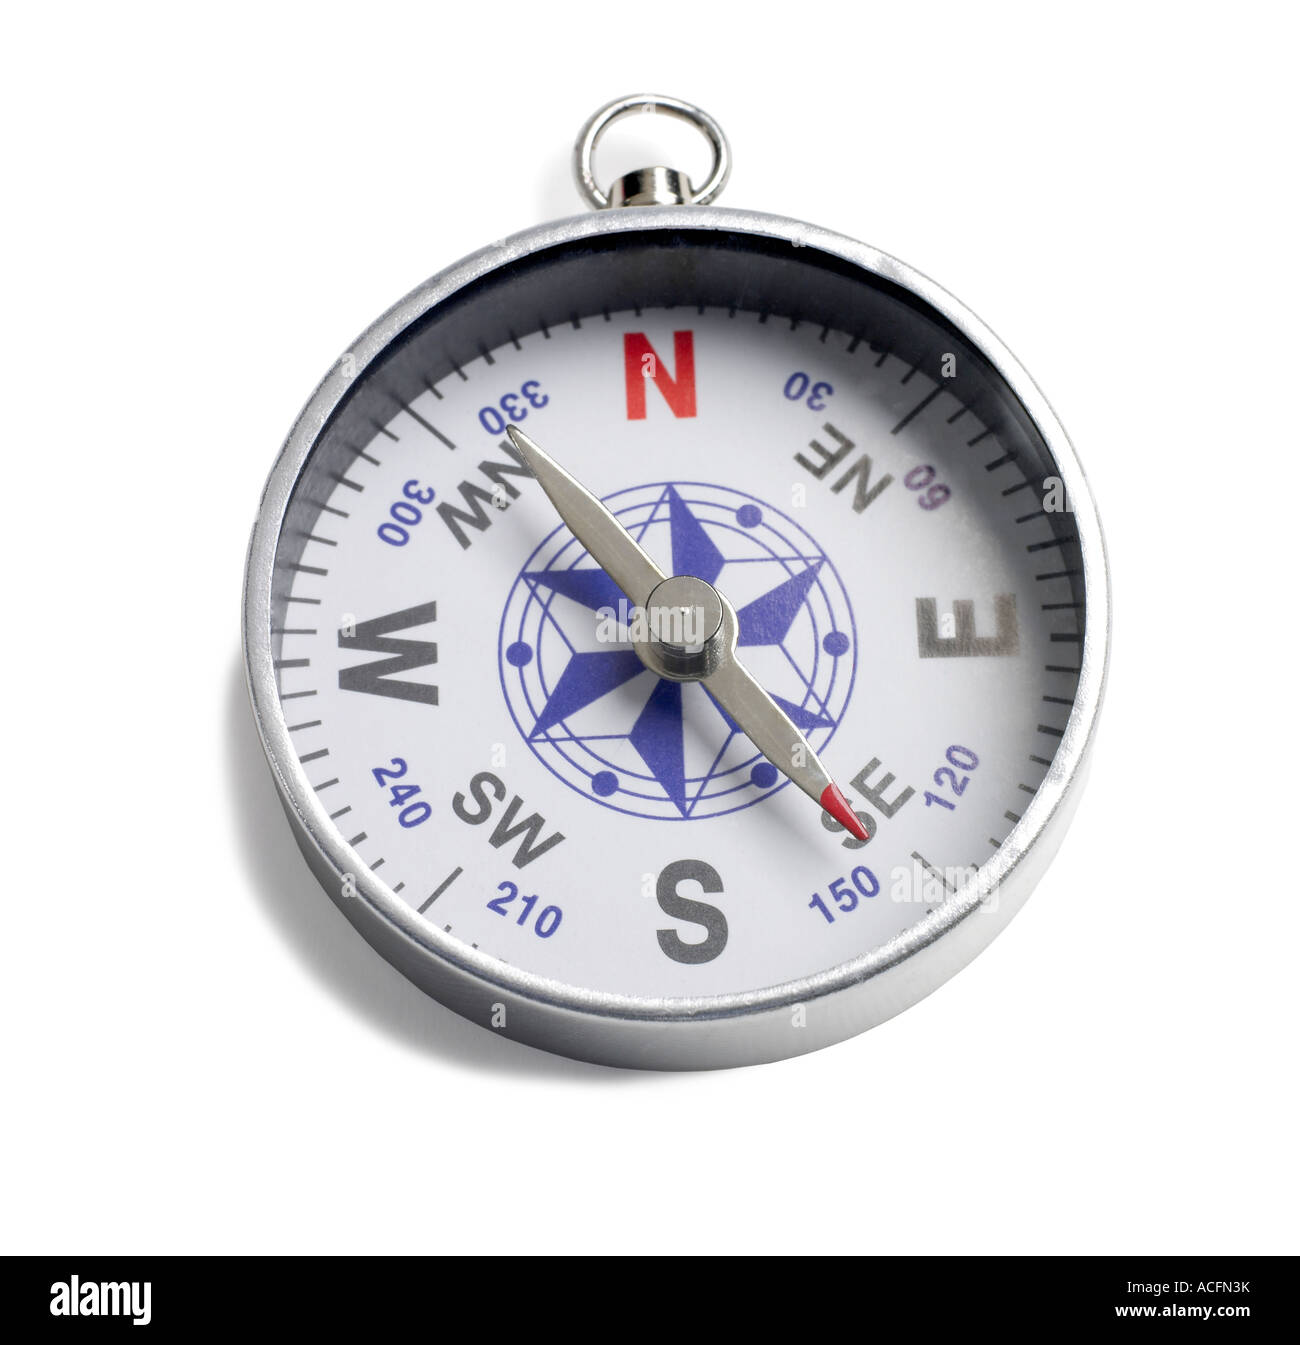 Magnetic Compass - Stock Image